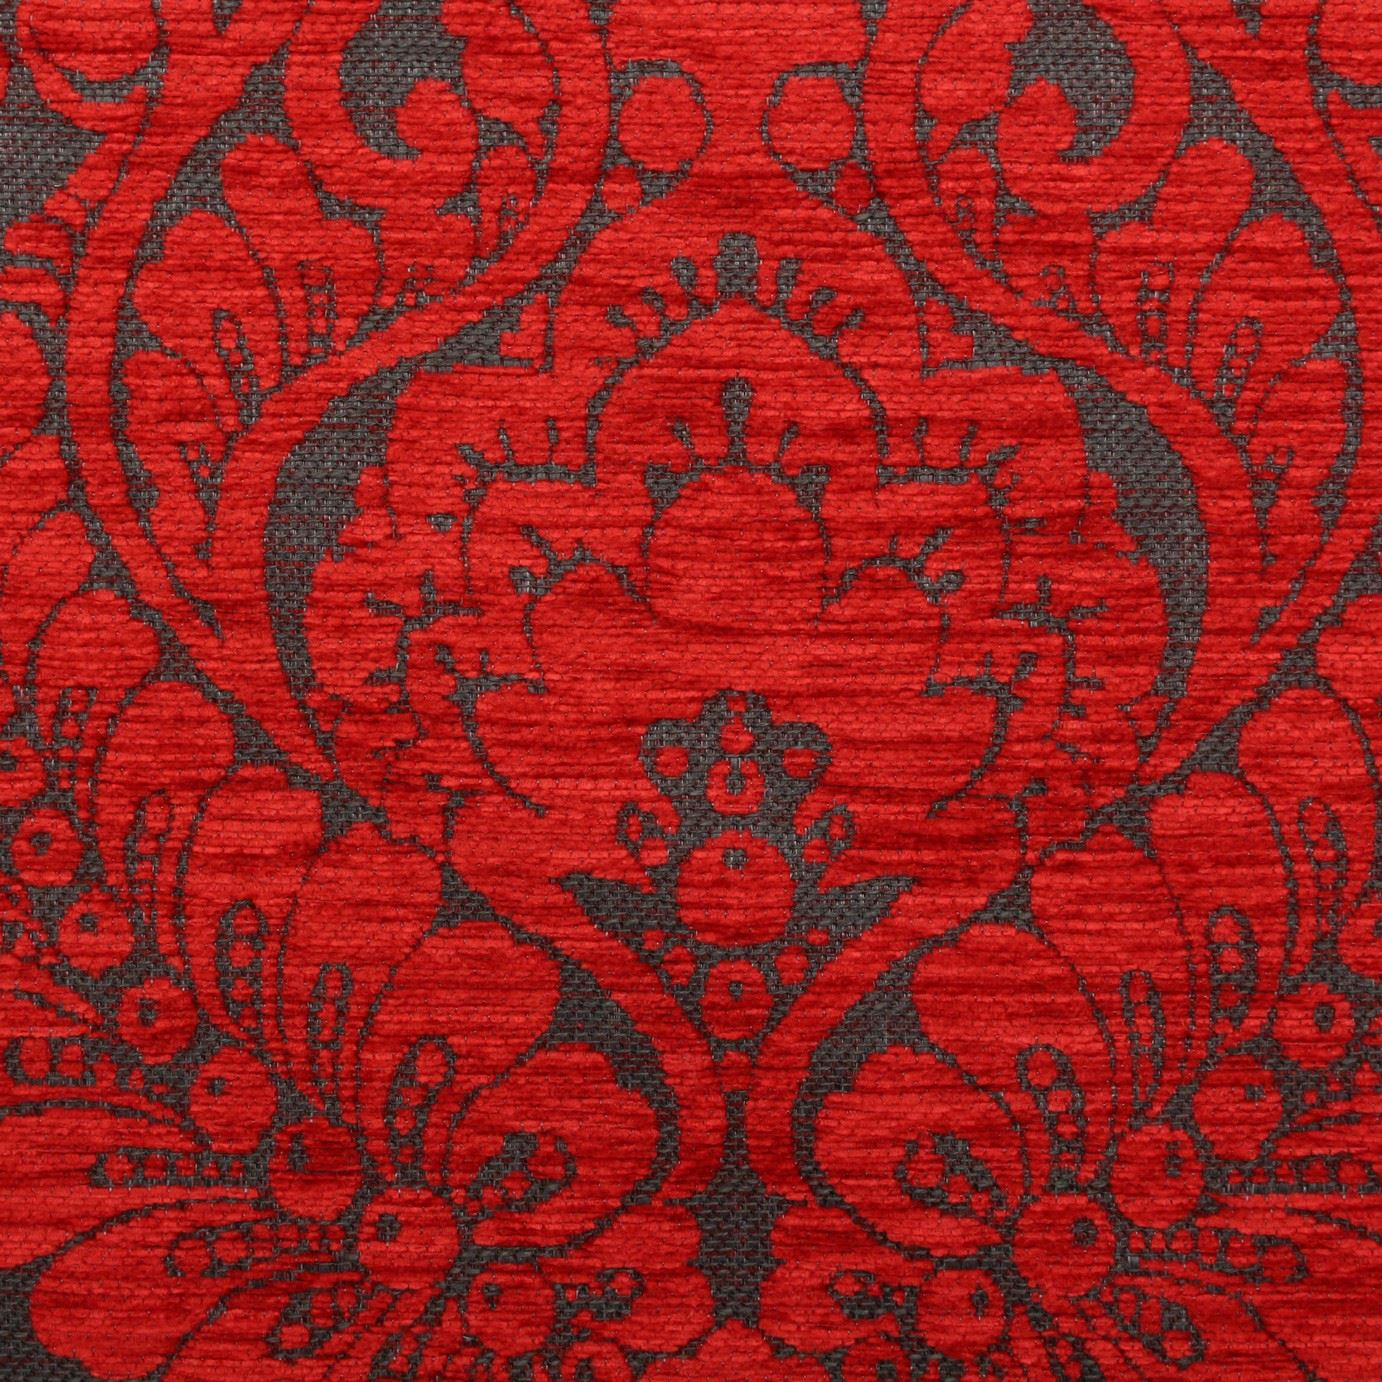 velvet sofa fabric online india tufted chesterfield style heavy weight chenille floral damask dfs